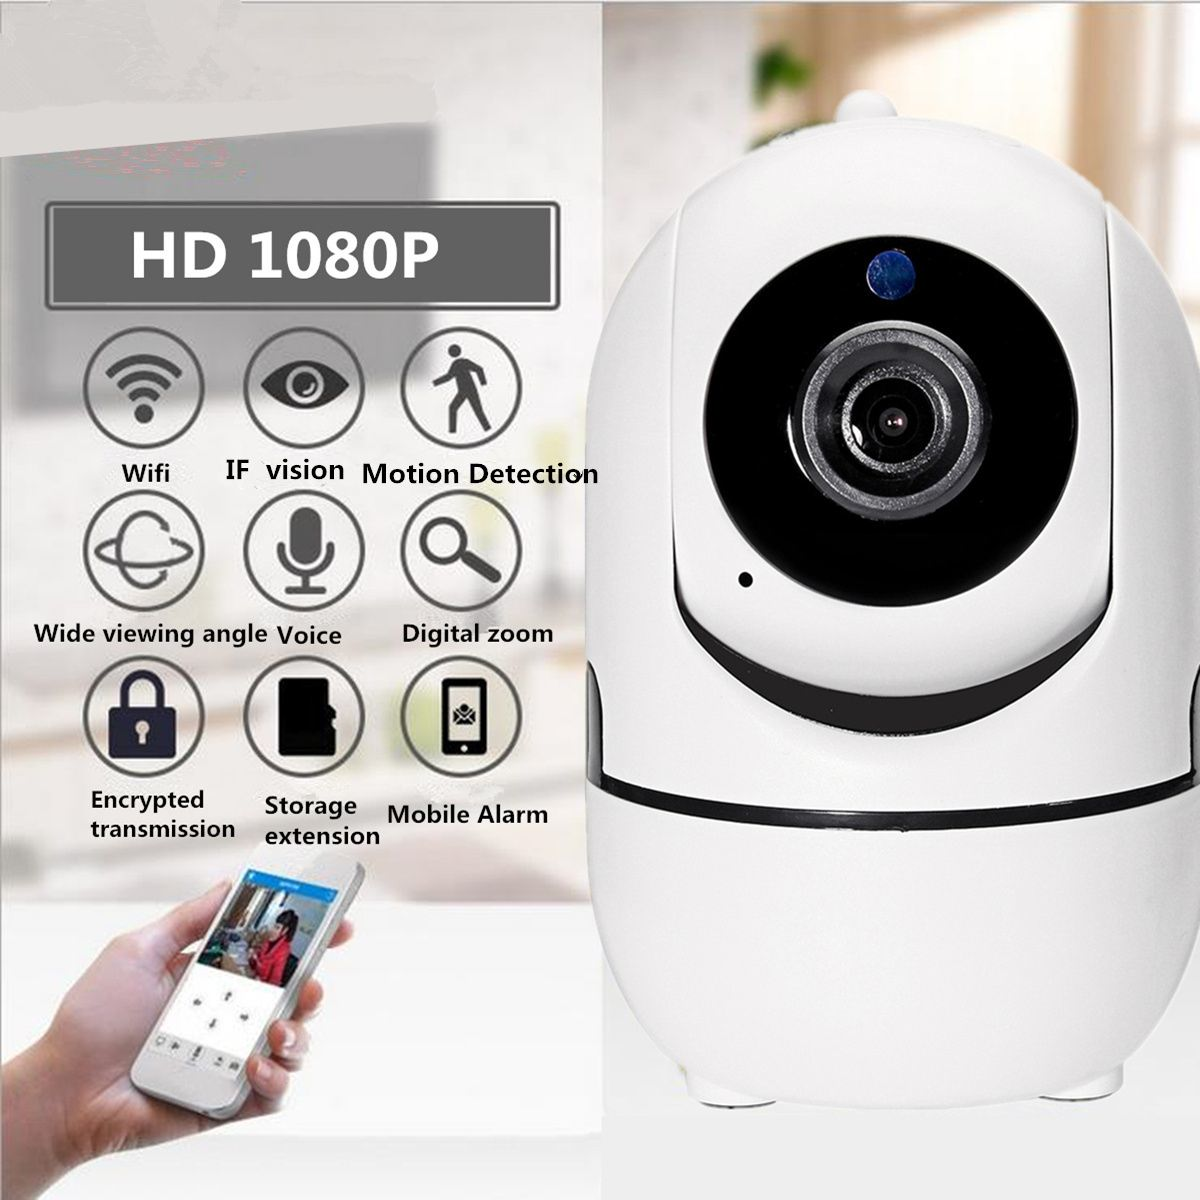 1080P HD WIFI Wireless IP Camera Network Wifi Indoor Infrared Night Vision Camera Home Security Surveillance Camera Alarm Sensor